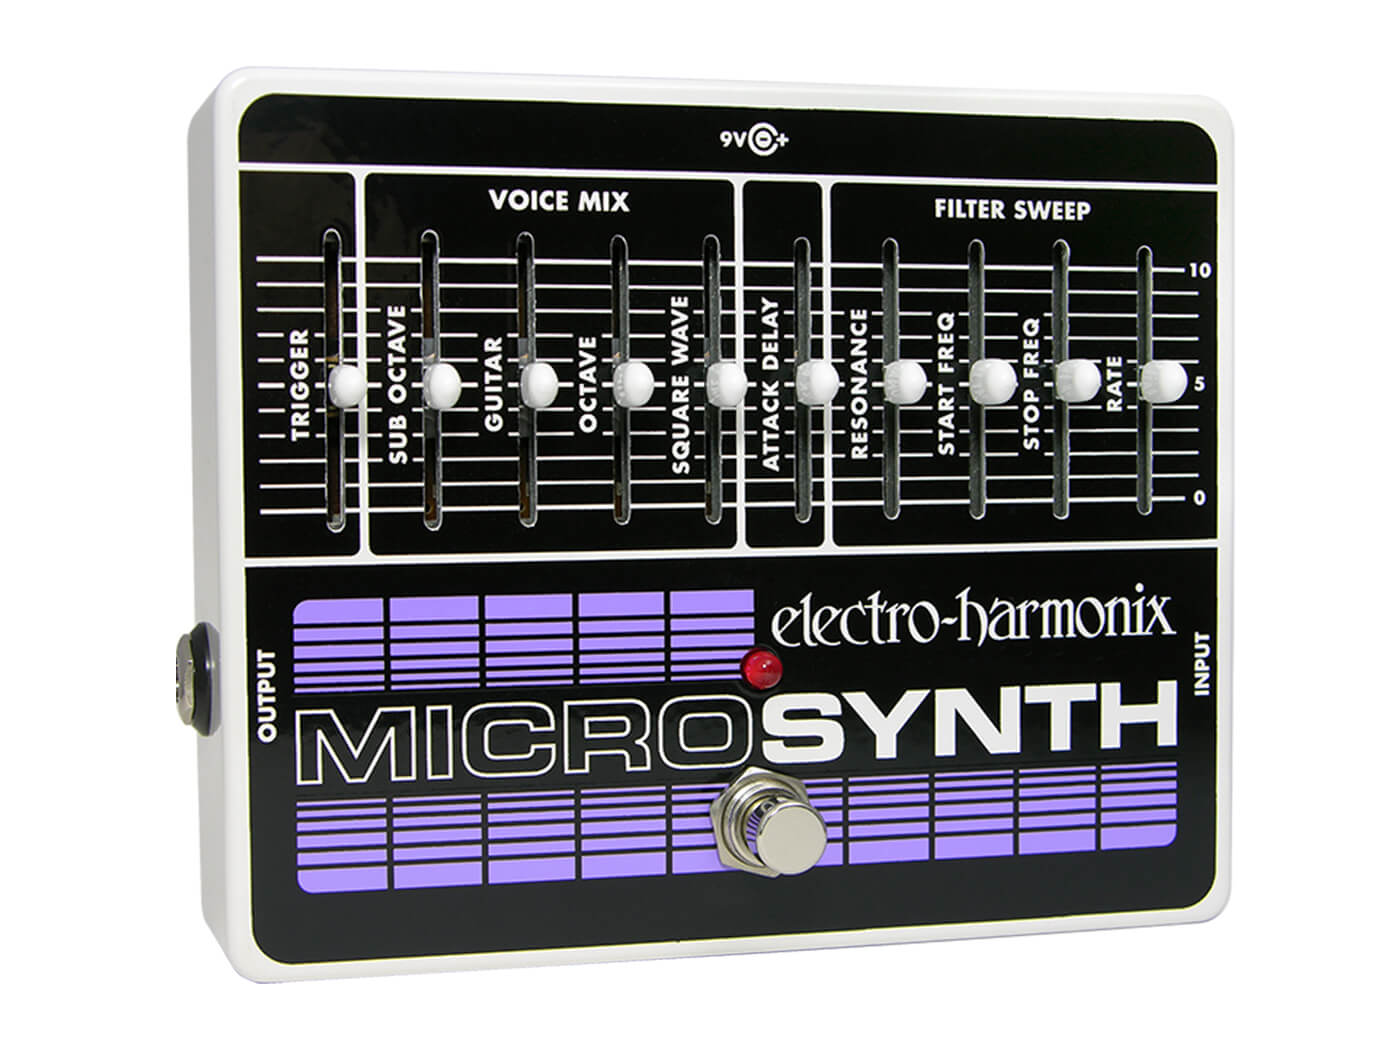 The EHX Micro Synth